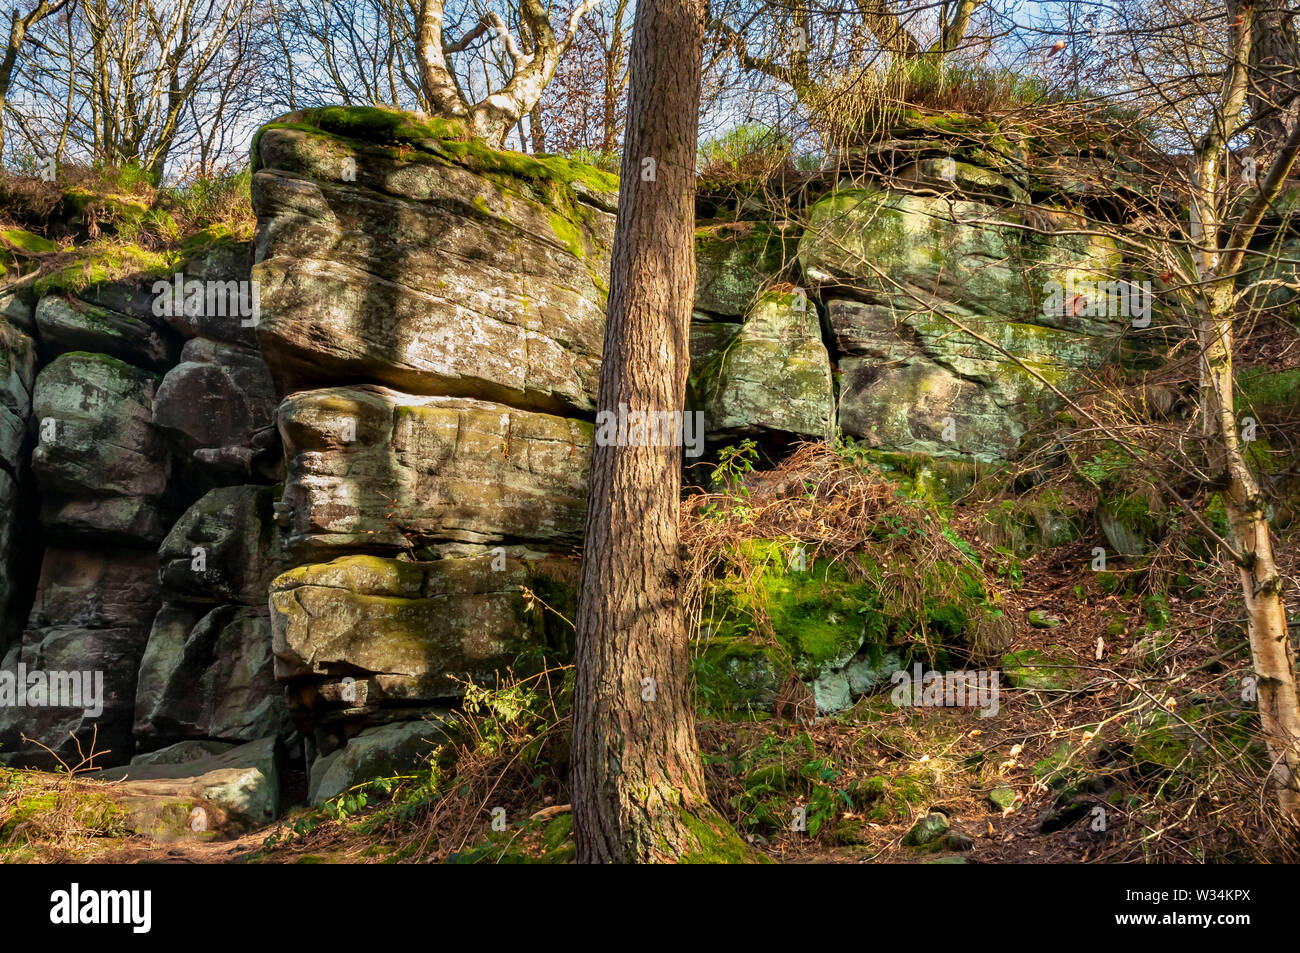 Sun-dappled view of a gritstone outcrop and trees high on the east side of Wyming Brook Gorge on the outskirts of Sheffield, South Yorkshire. Stock Photo